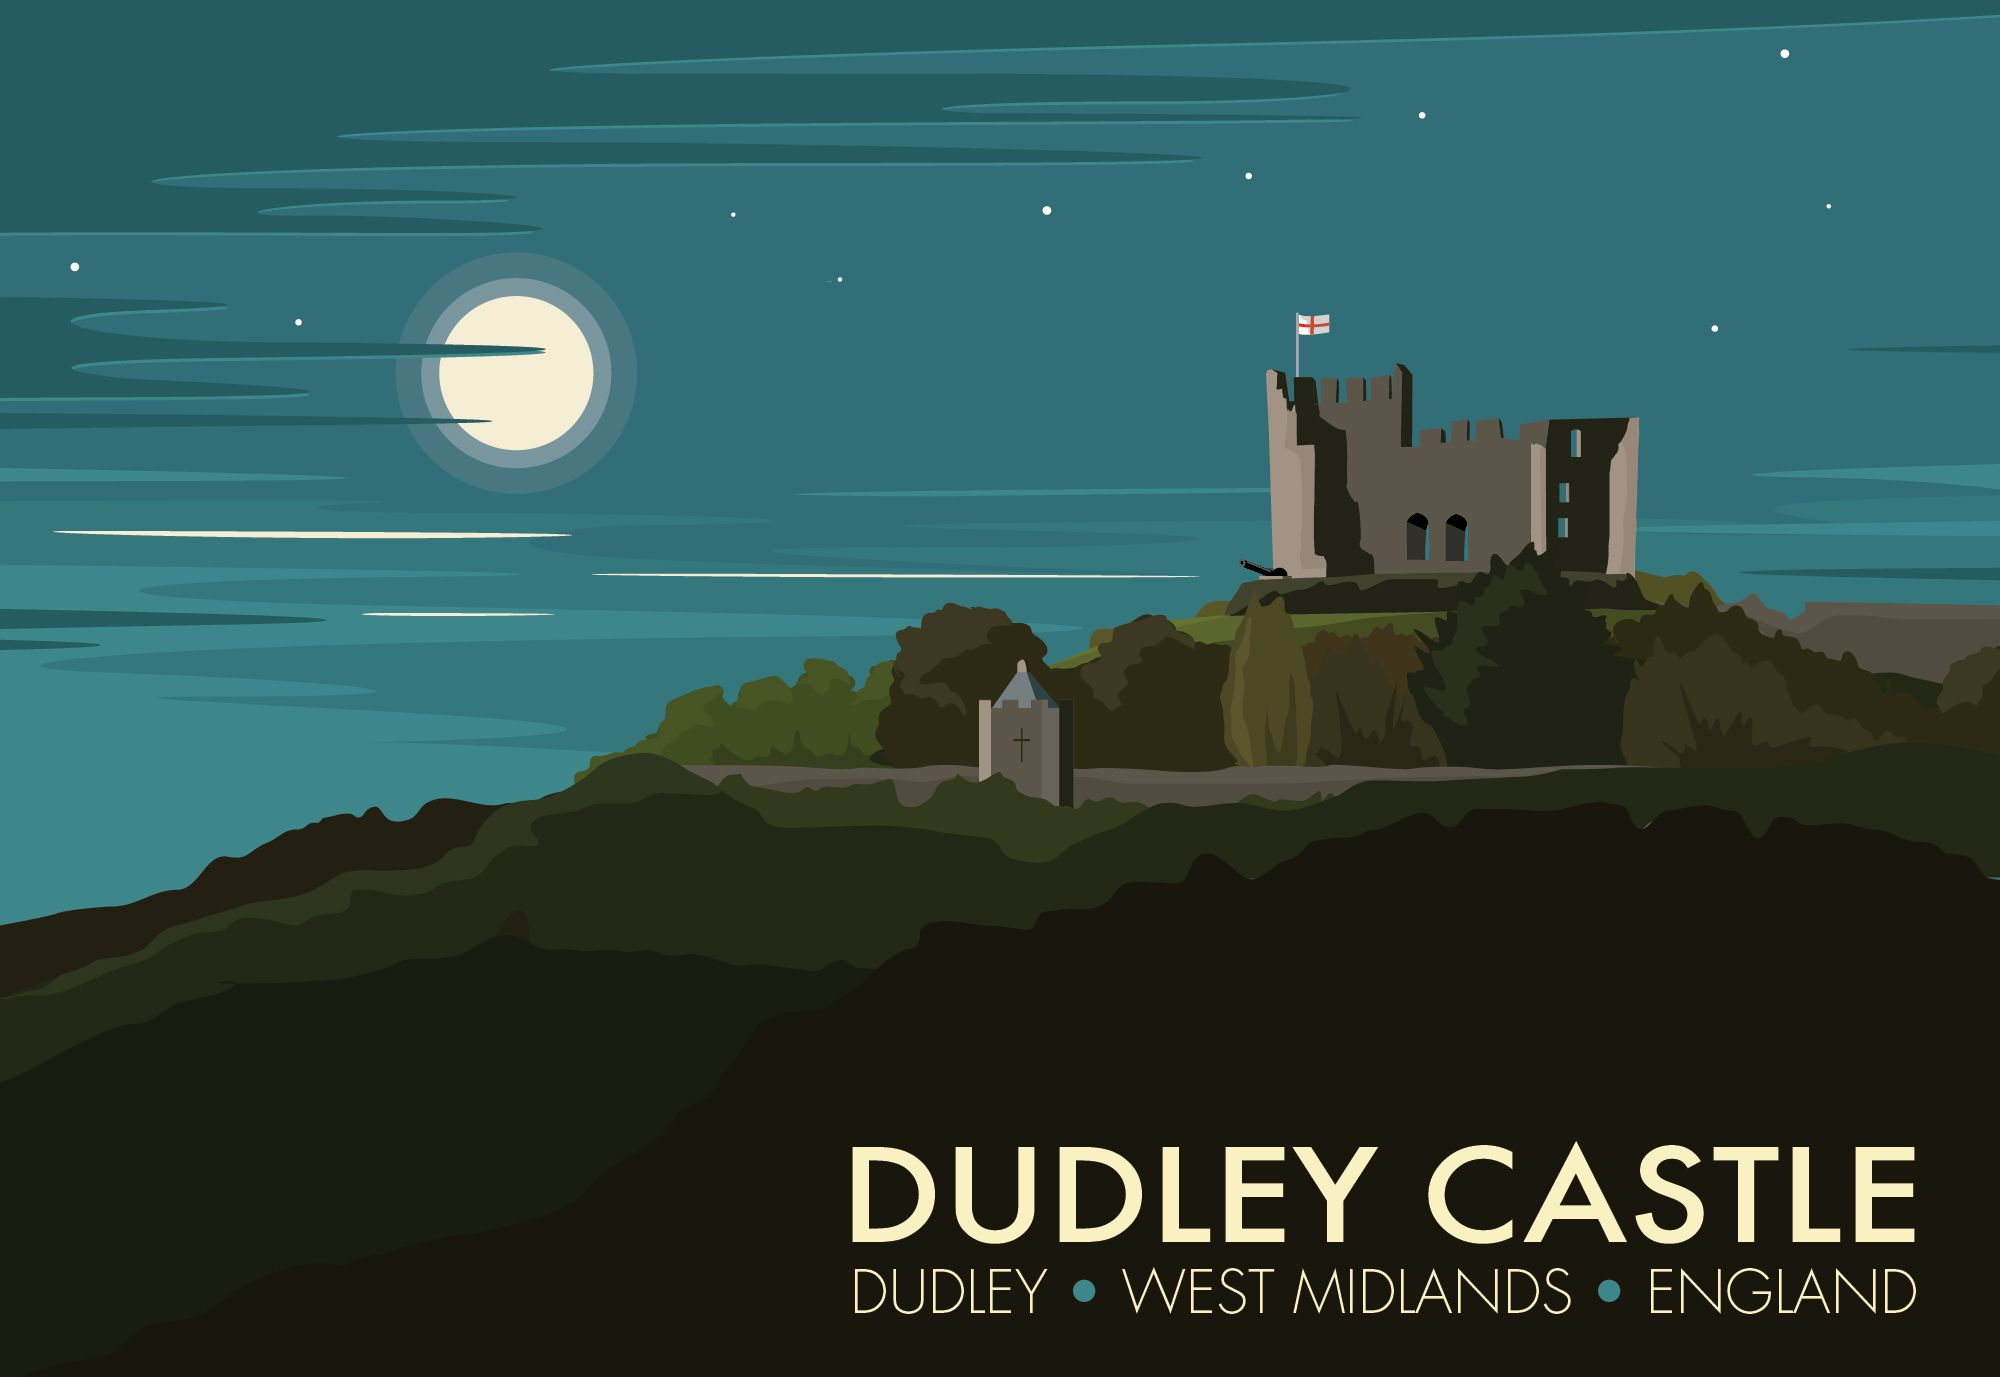 Dudley Castle Travel Poster Westley Art